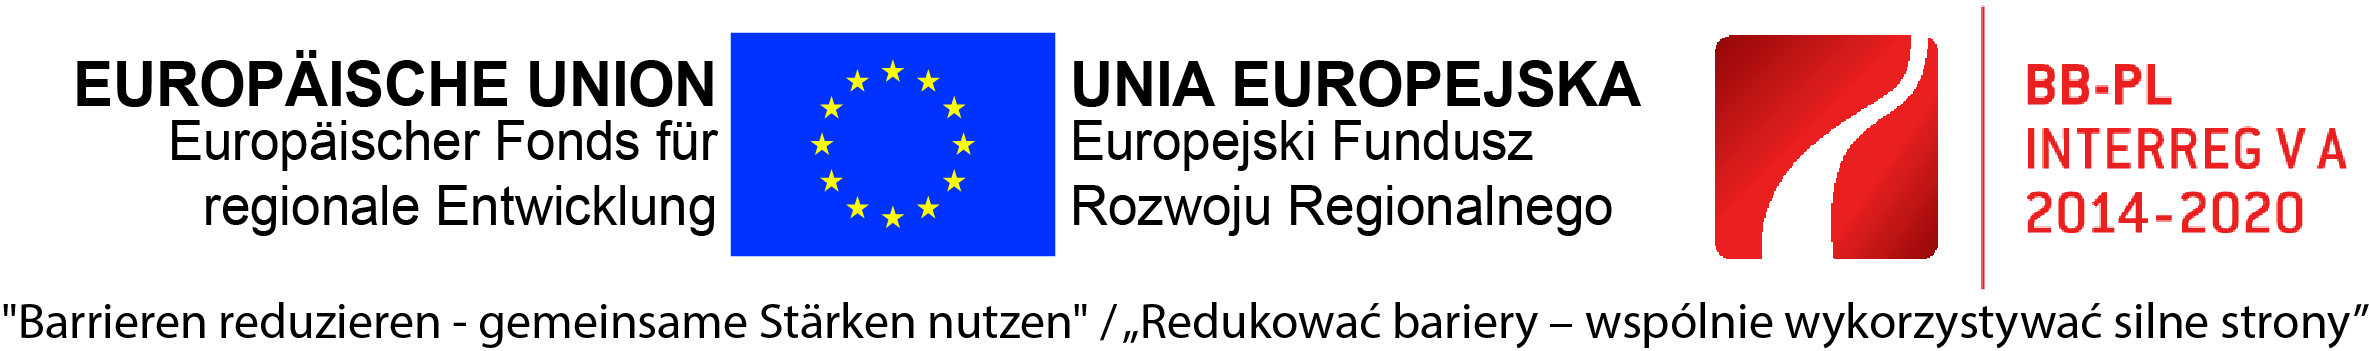 INTERREG Logo BB Polen